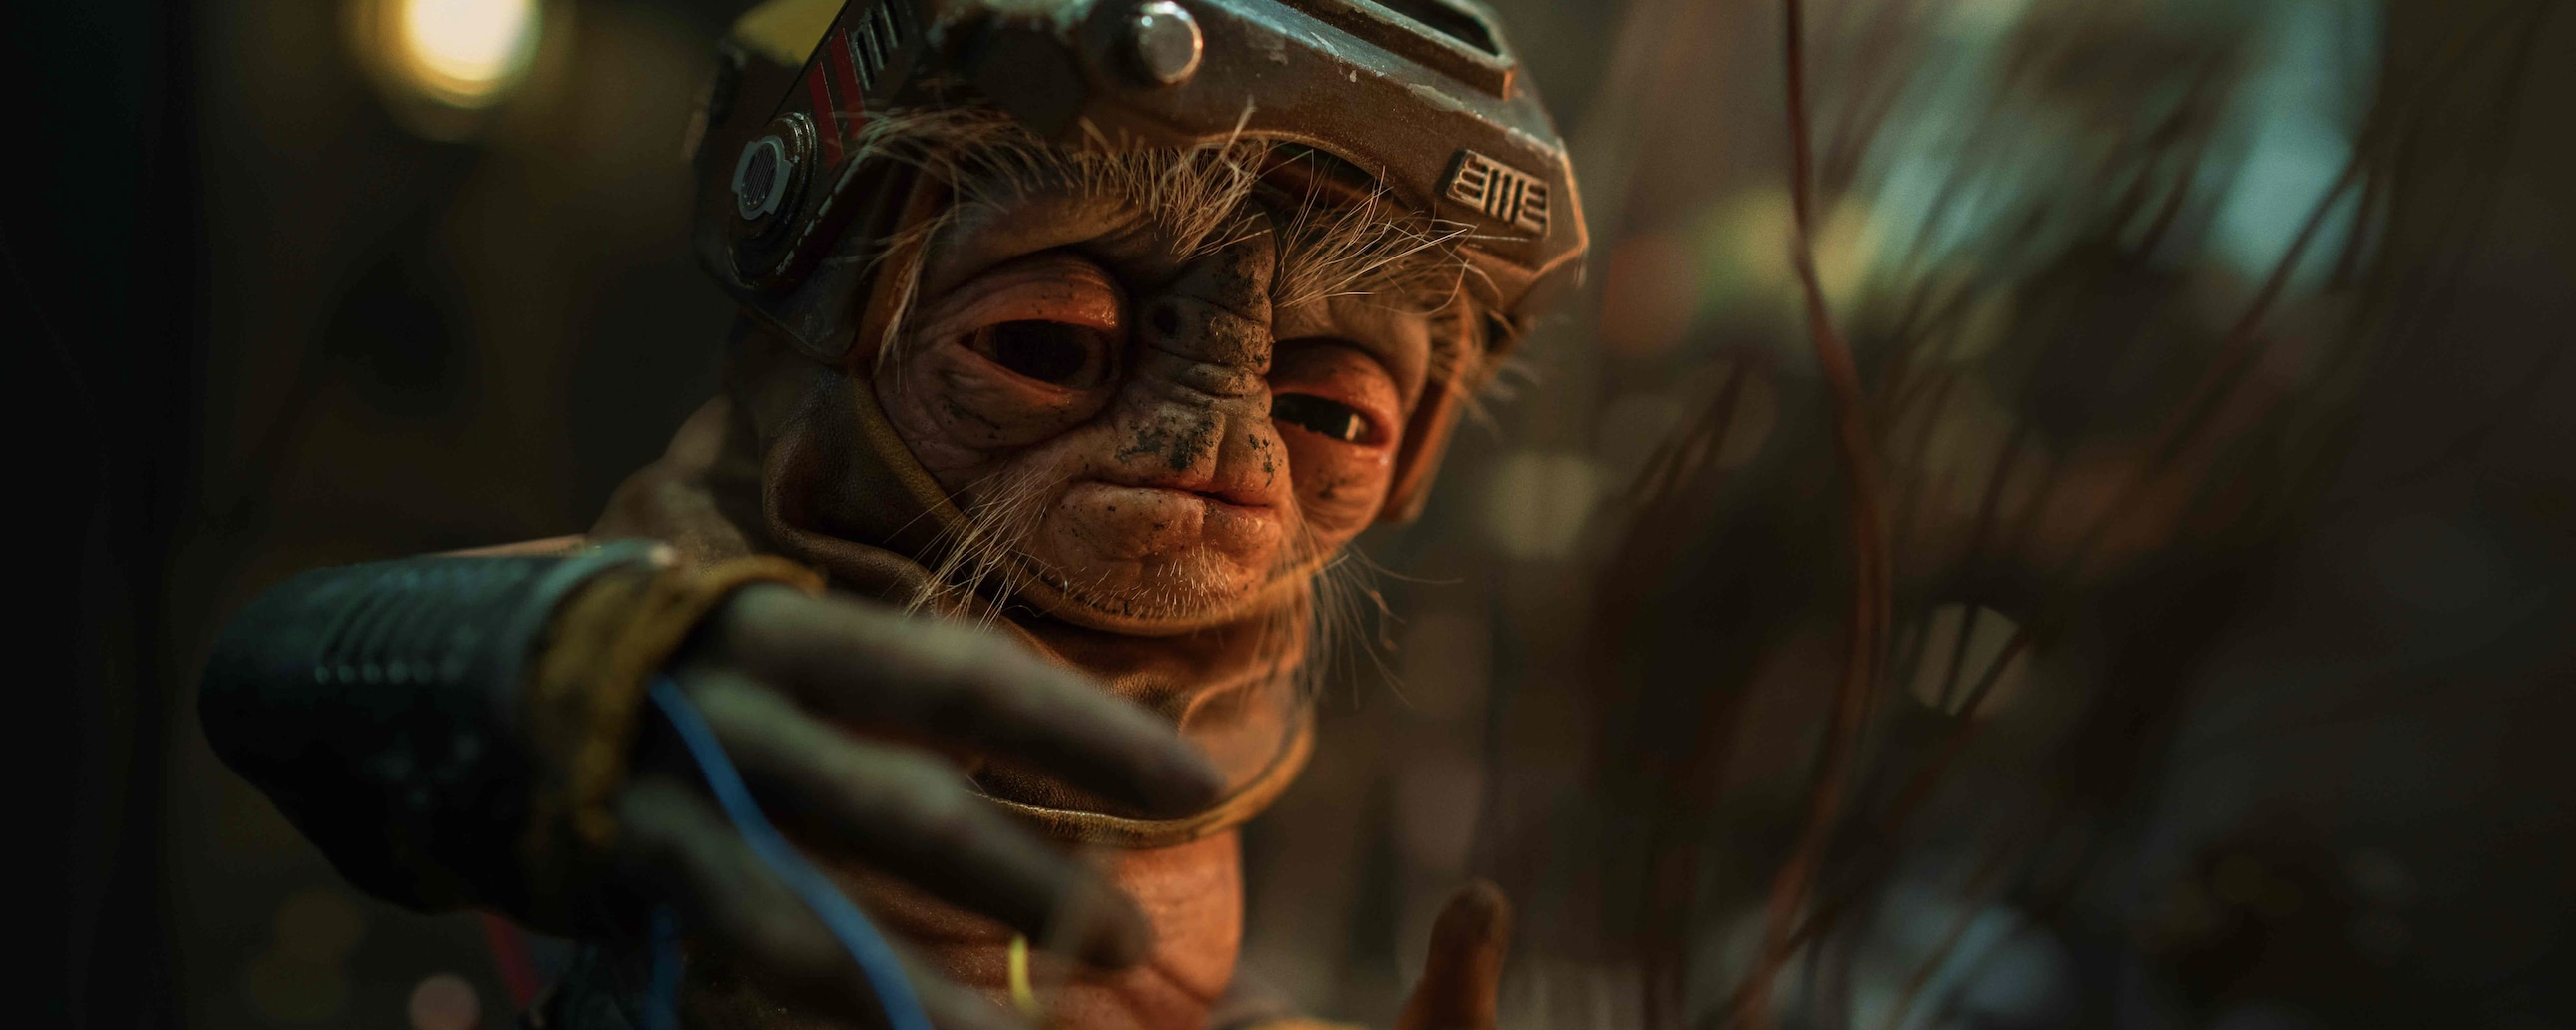 Babu Frik from Star Wars: The Rise of Skywalker